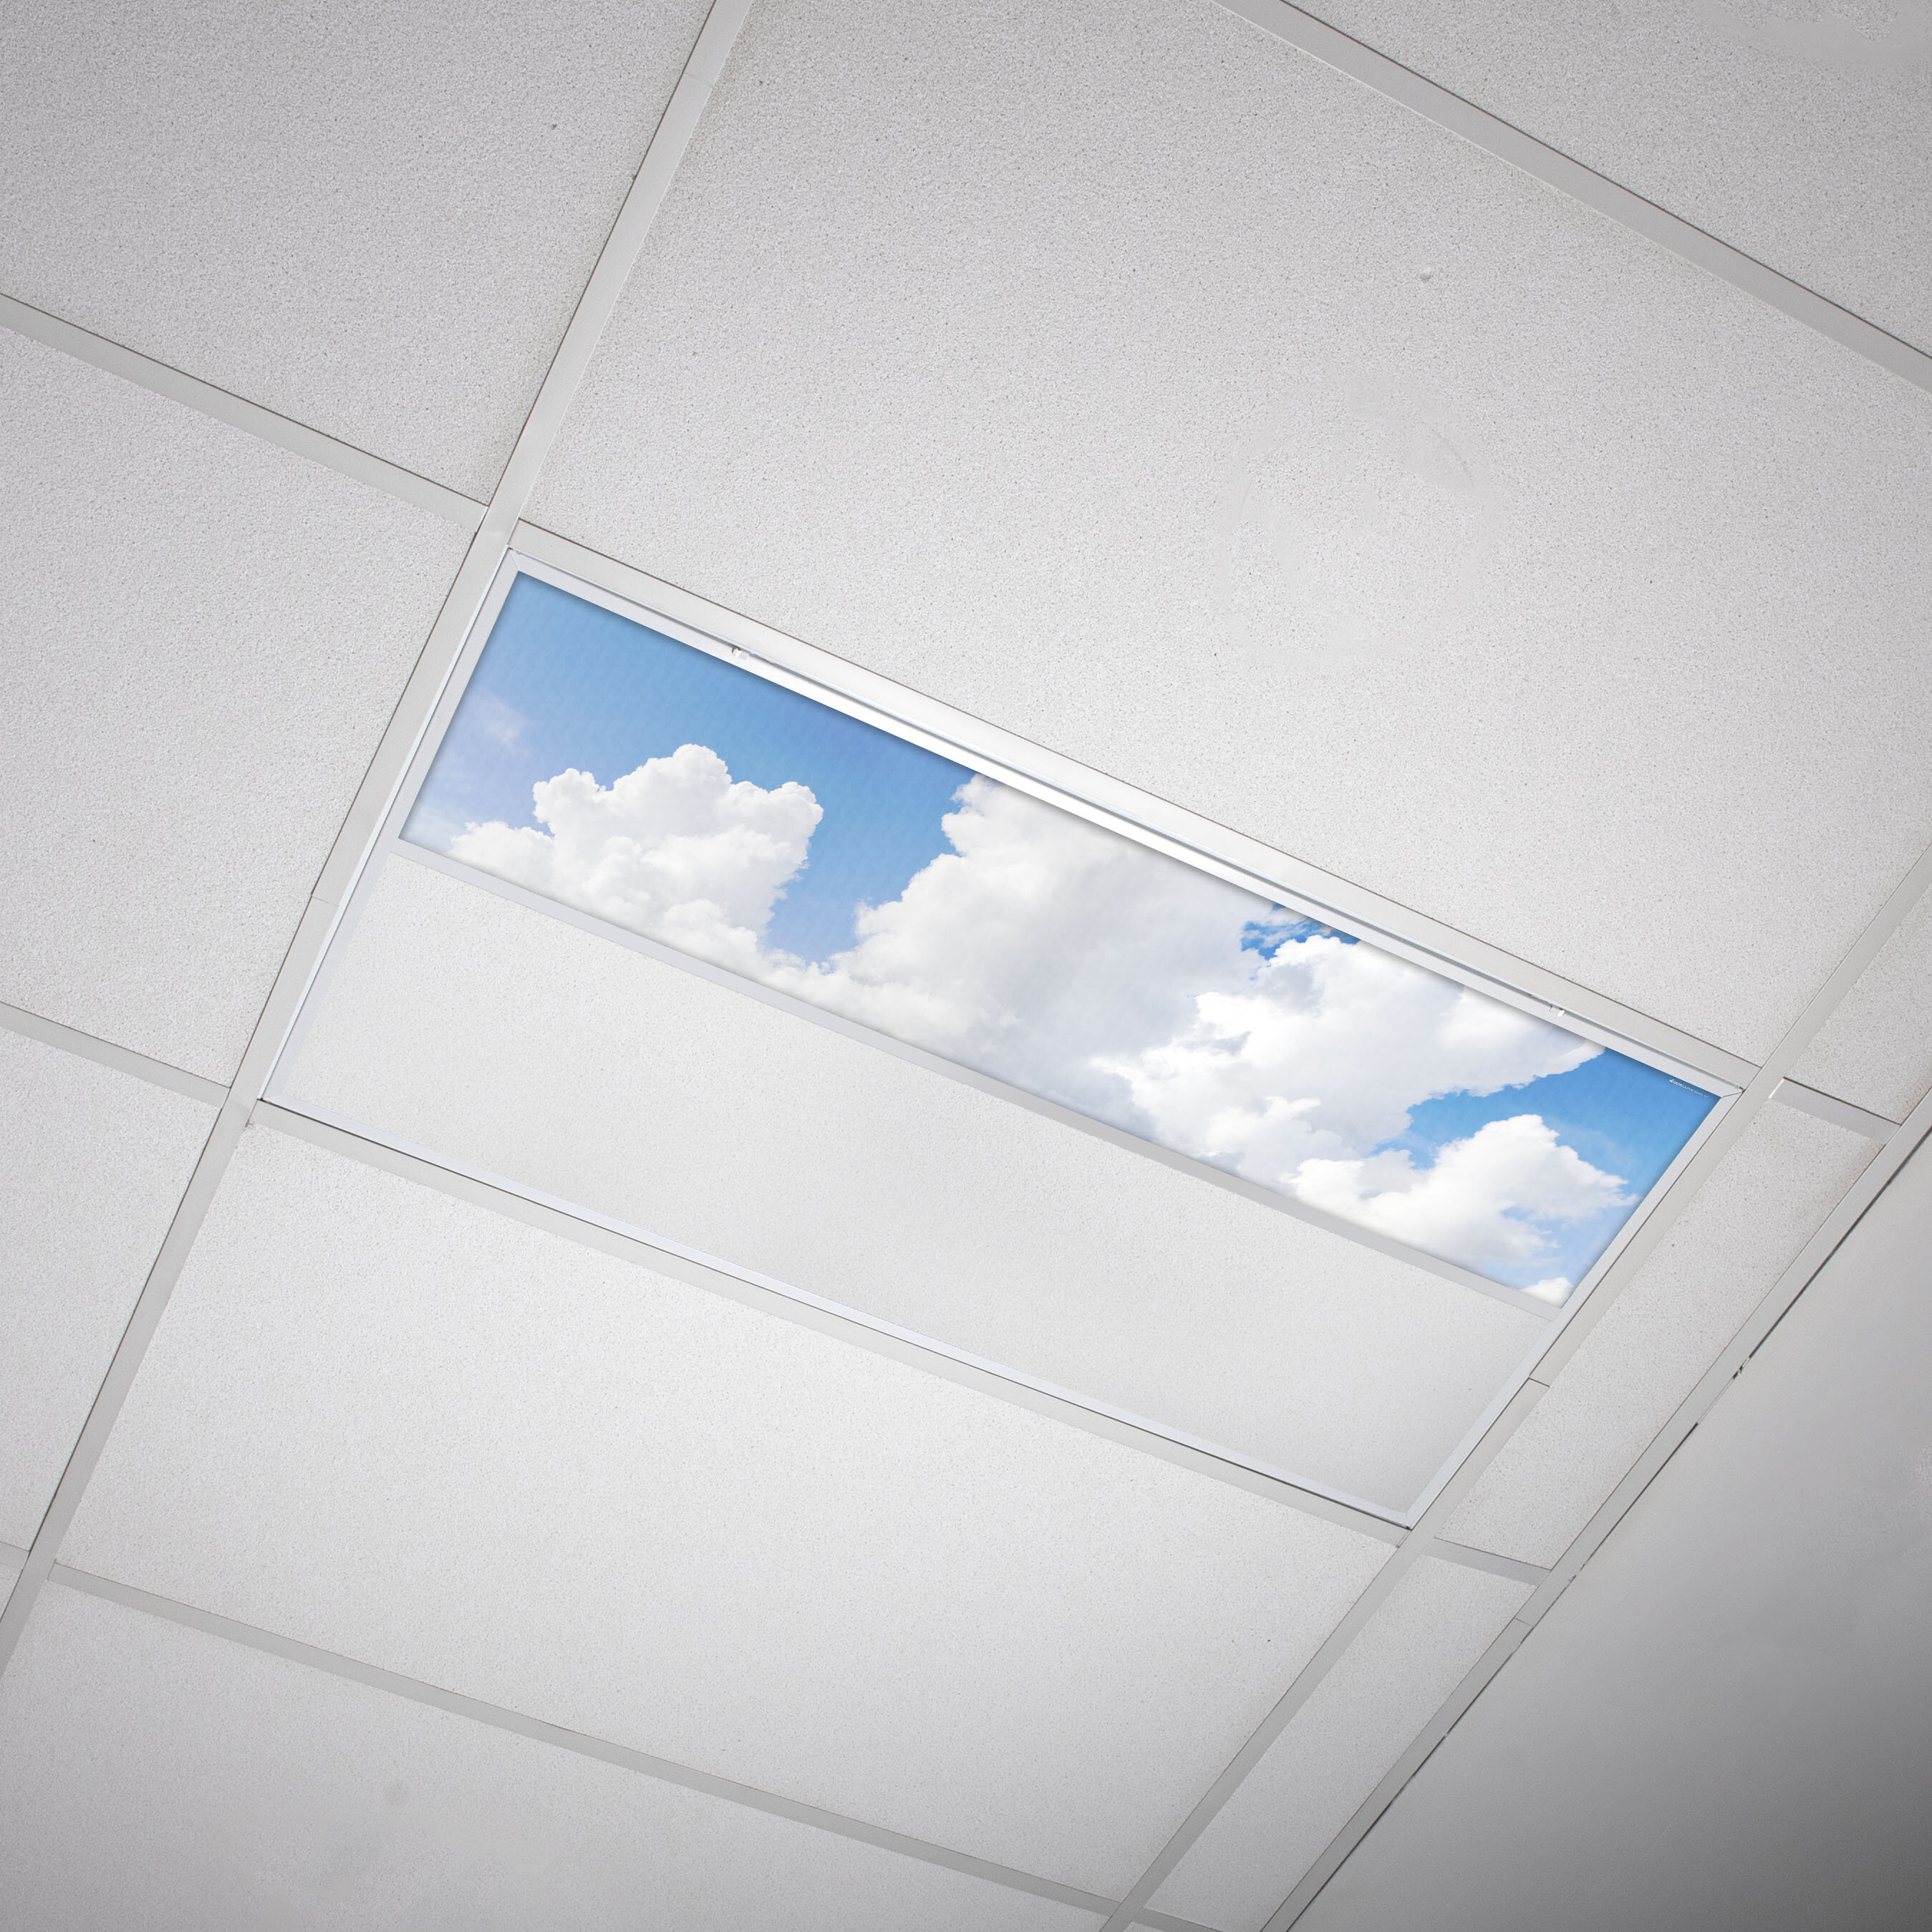 Octo Lights Fluorescent Light Covers Flexible Ceiling Light Diffuser Panels Decorative Clouds For Classrooms And Offices 015 Wayfair Ca